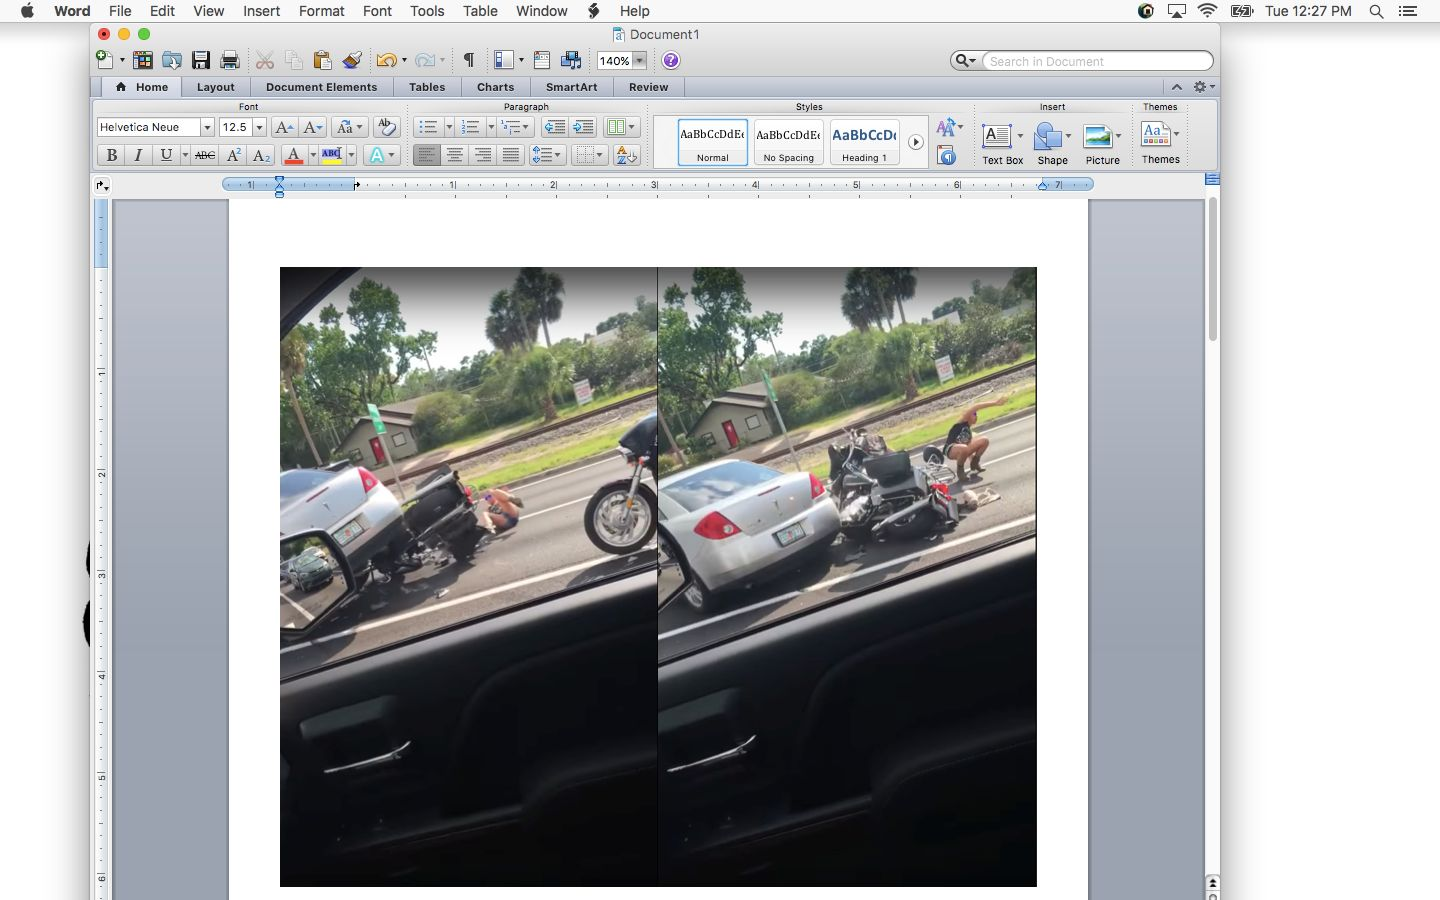 Video uploaded to YouTube shows the cardriving over a motorcycle and then peeling away from the scene.